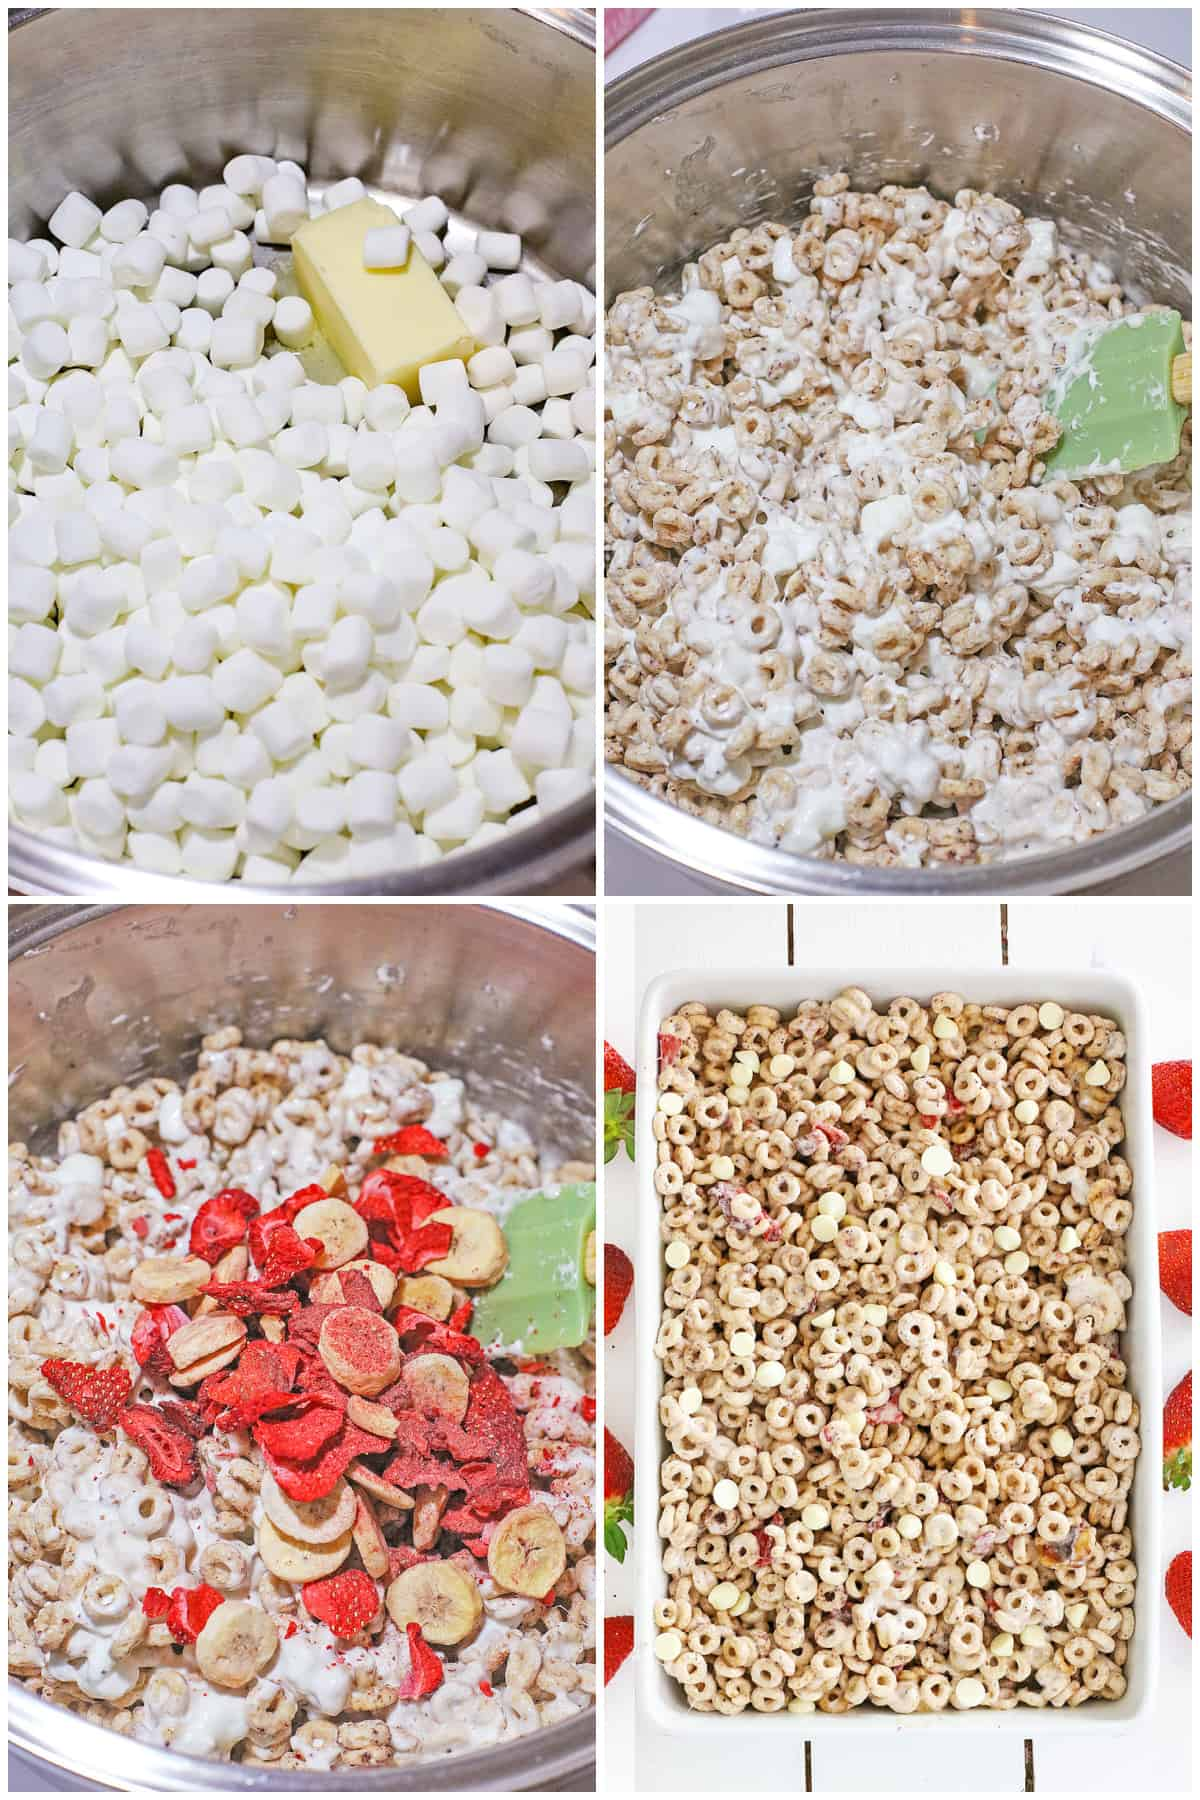 Step by step photos on how to make a Cereal Bar